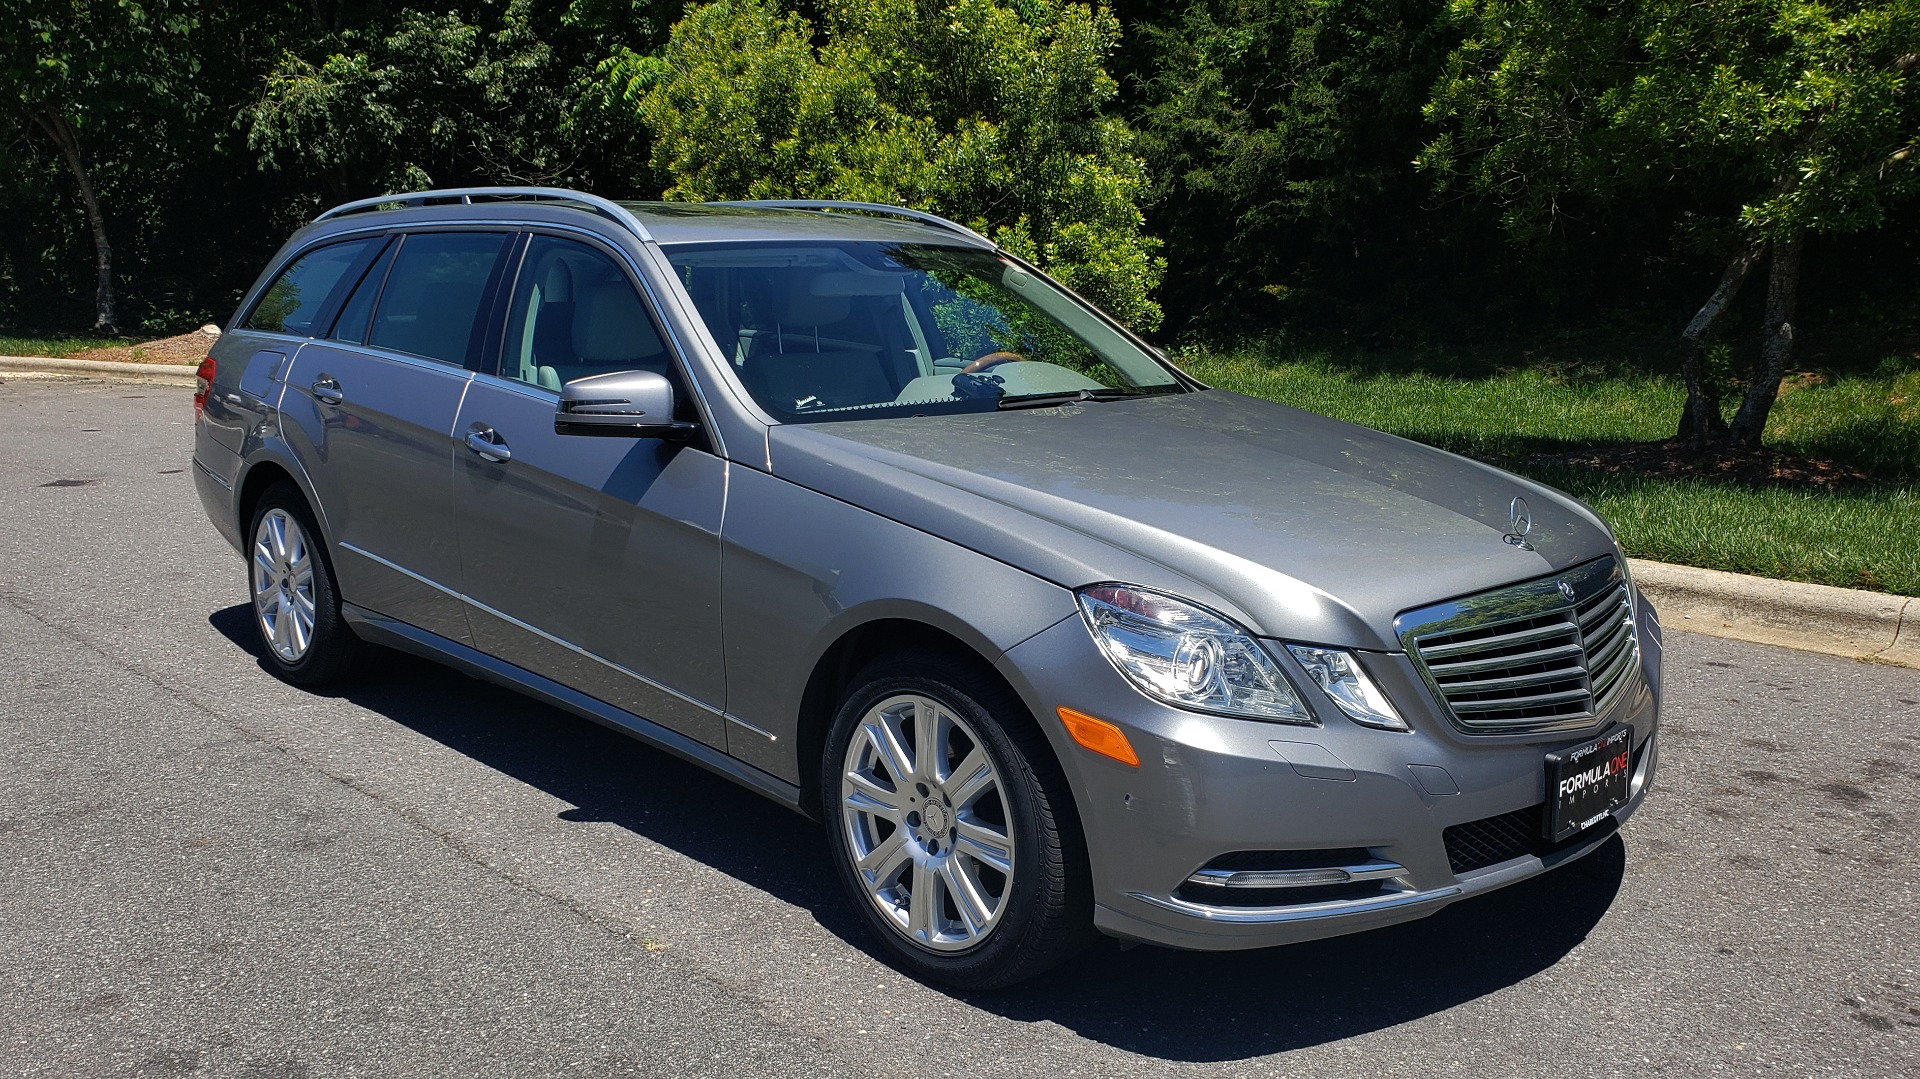 Used 2013 Mercedes-Benz E-CLASS E 350 LUXURY 4MATIC WAGON / PREM PKG / SNRF / LANE TRACK for sale Sold at Formula Imports in Charlotte NC 28227 4